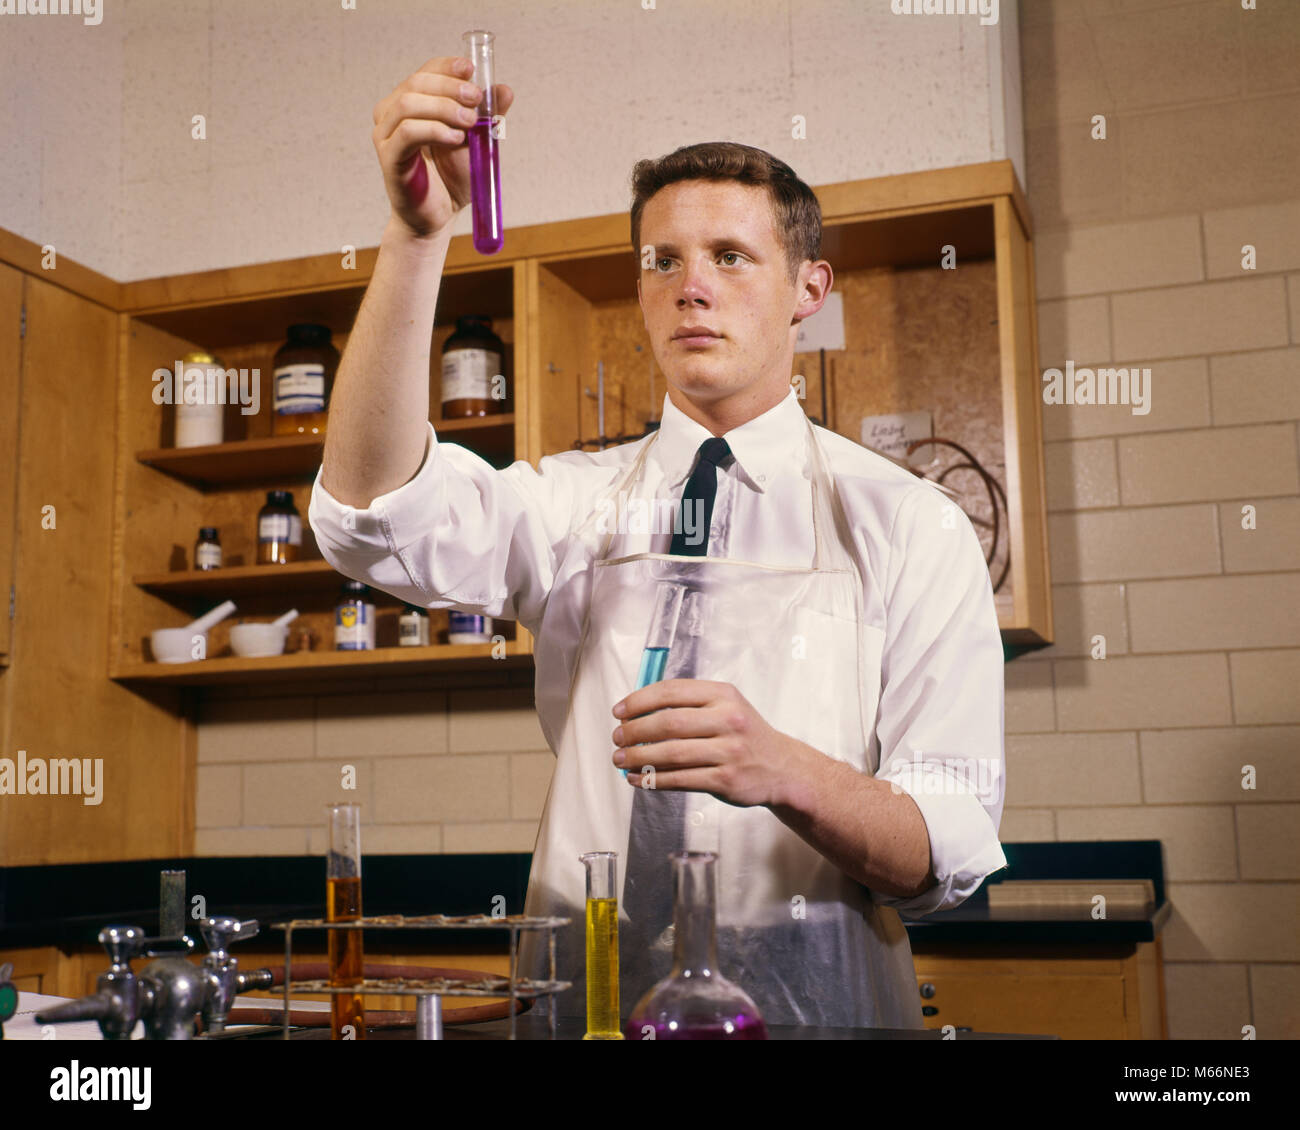 1960s MALE HIGH SCHOOL TEENAGE STUDENT IN CHEMISTRY LABORATORY HOLDING TEST TUBES - ks2094 HAR001 HARS ONE PERSON Stock Photo